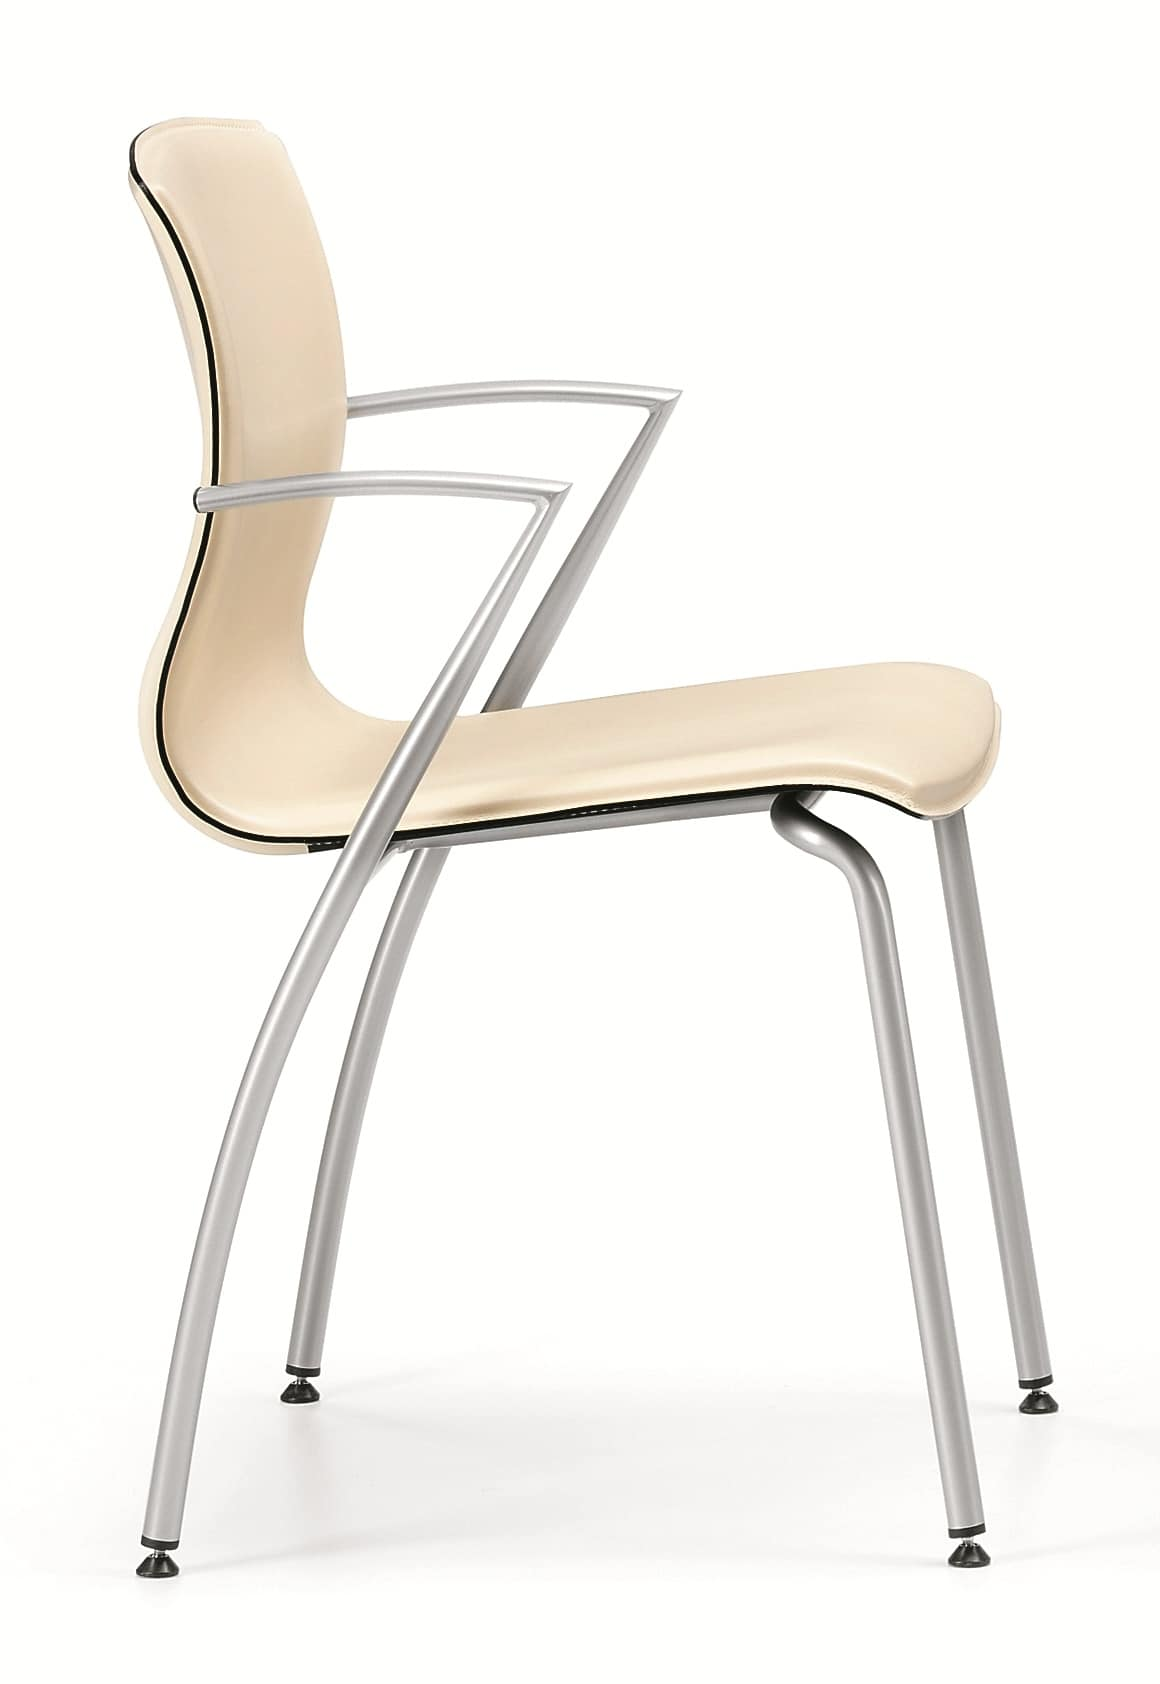 WEBTOP 384, Metal chair with leather upholstered seat